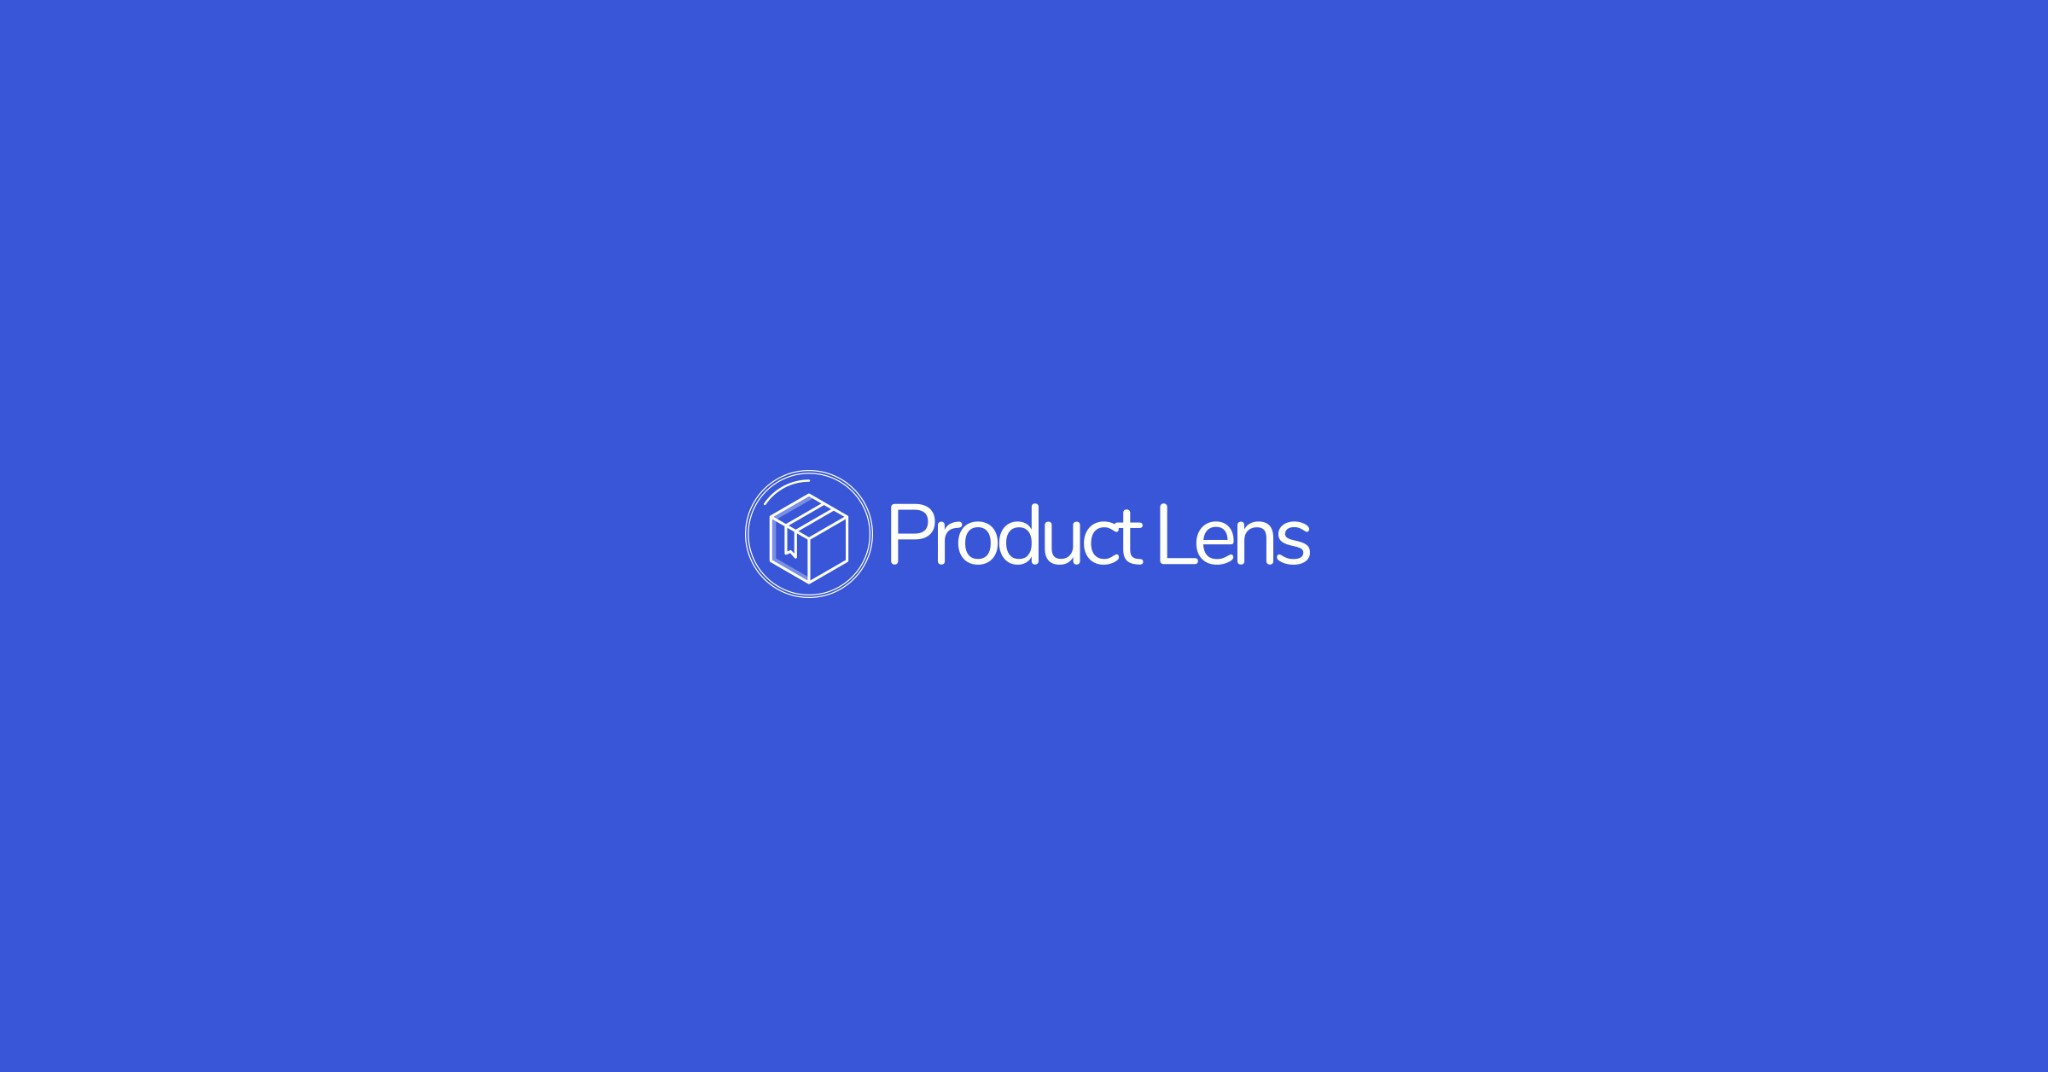 Product Lens